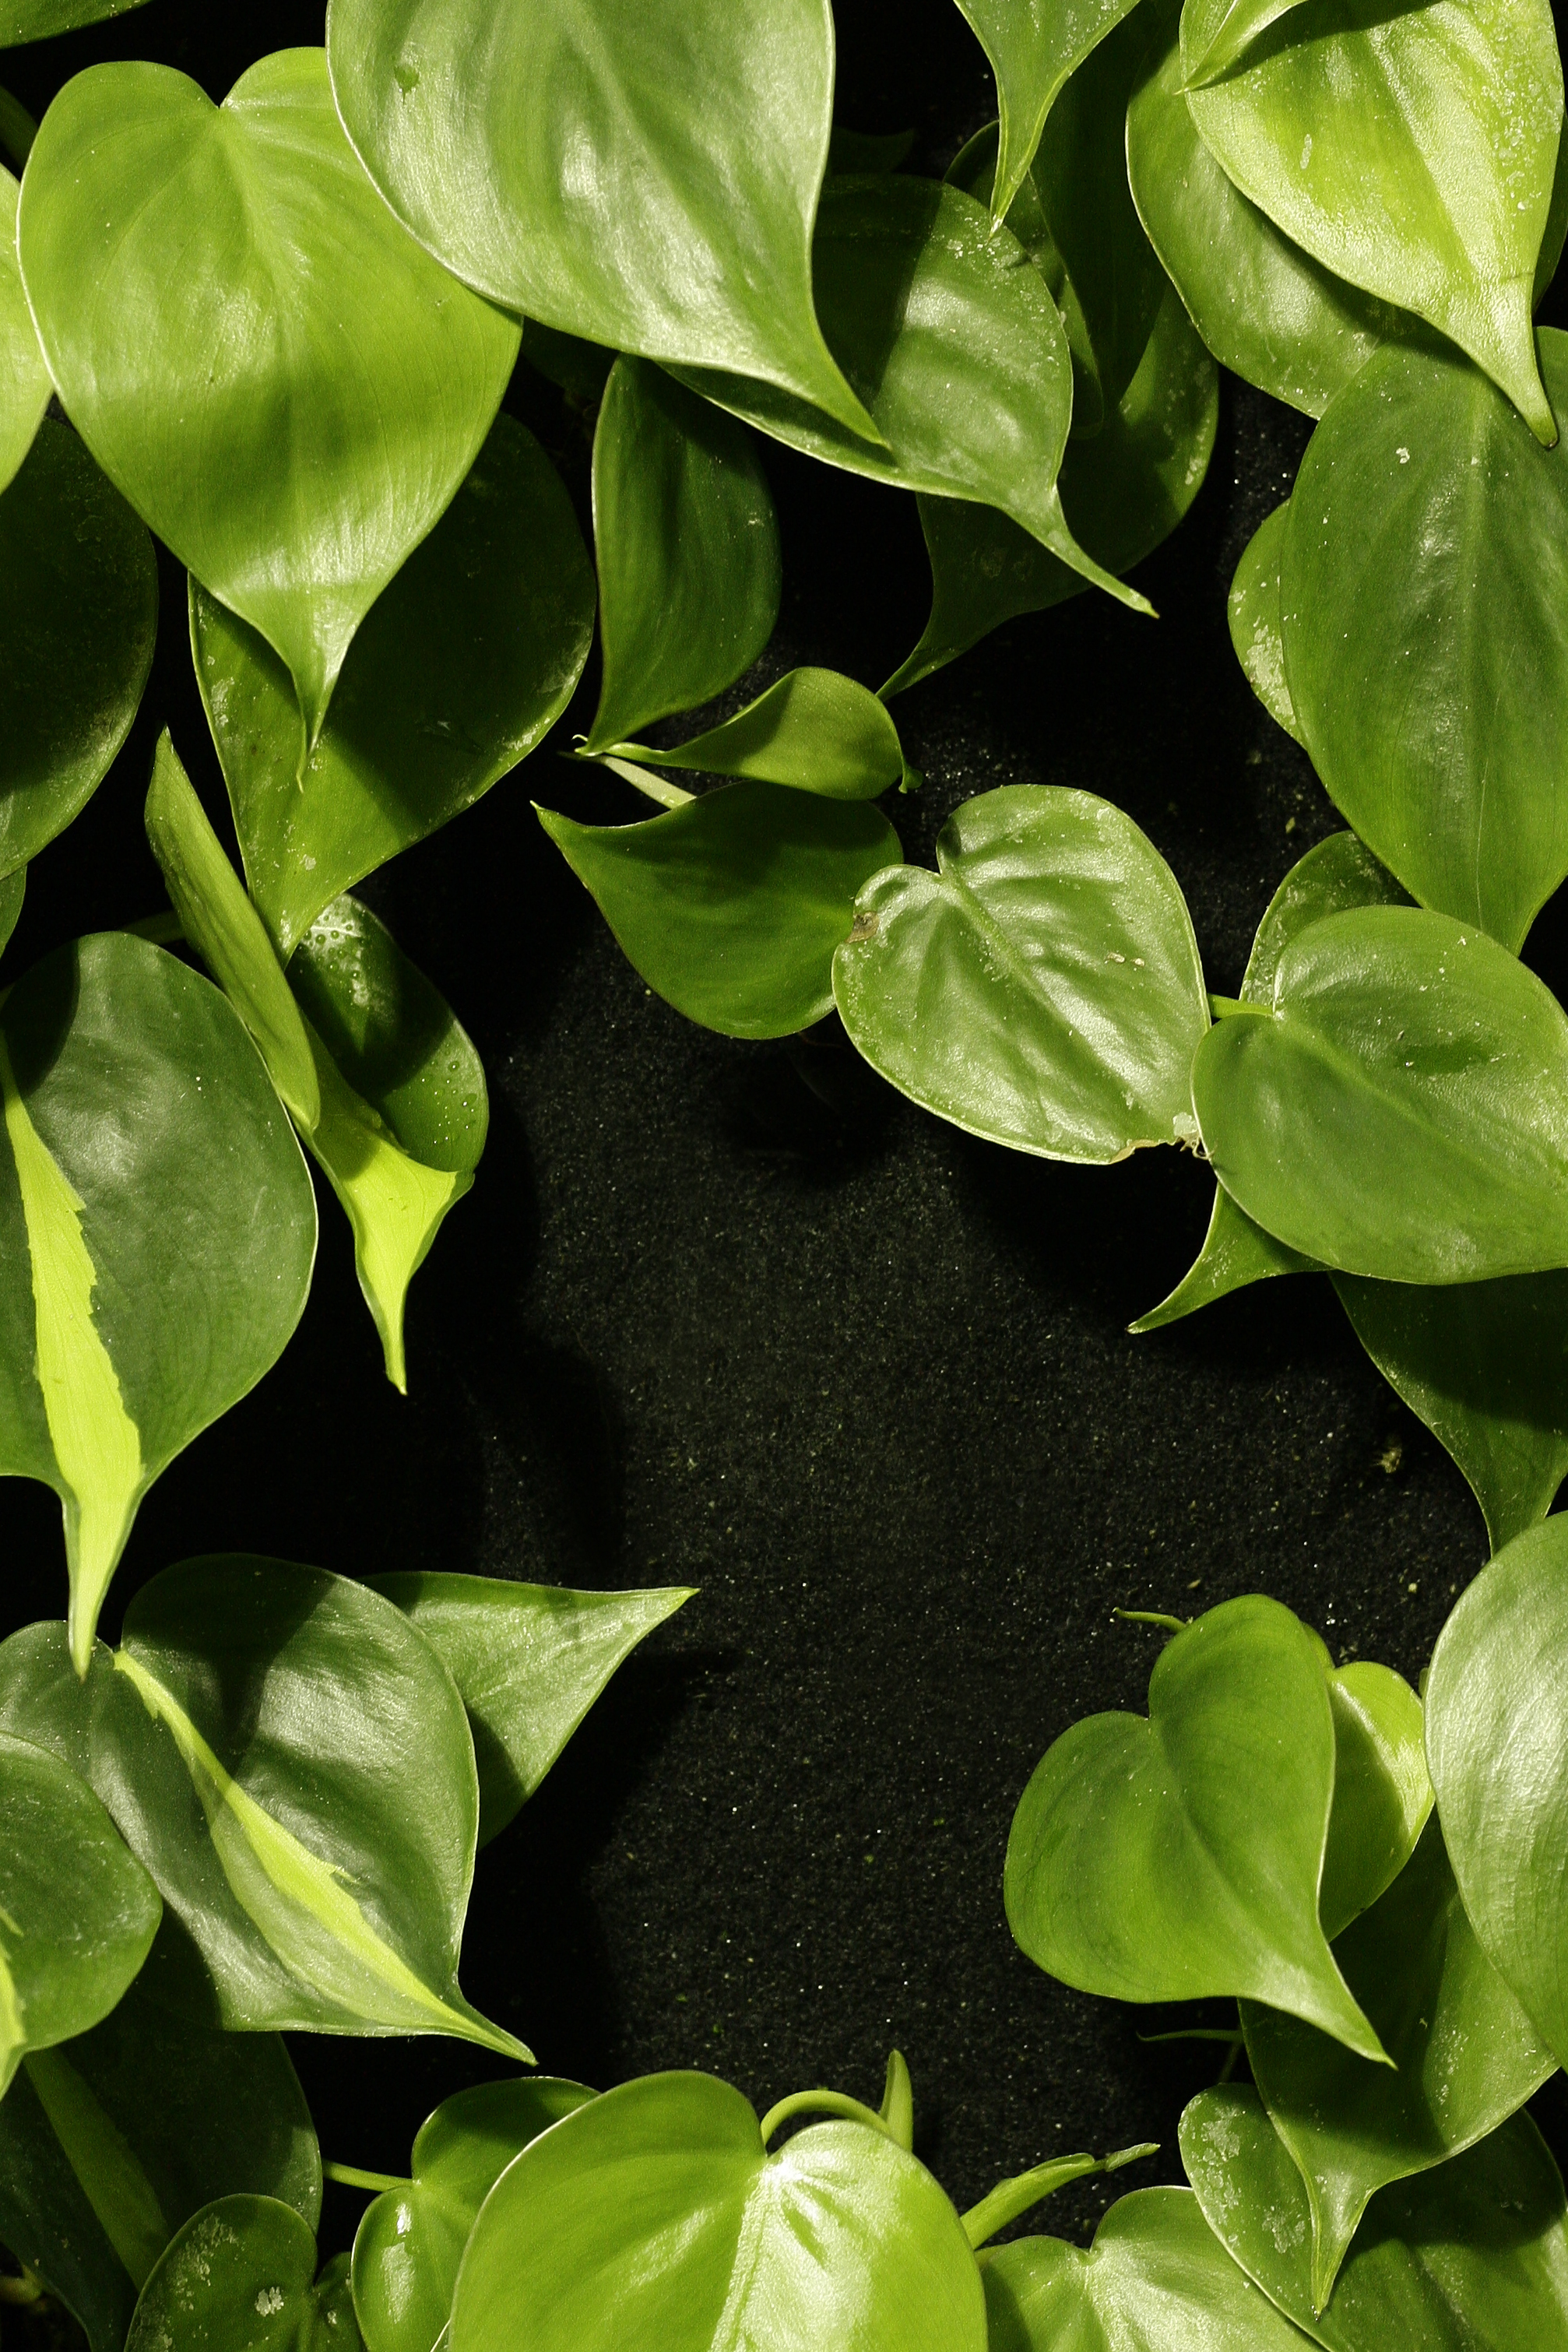 Philodendron hederaceum and P. 'Brazil',growing as nature intended.Image © In Situ Plants .